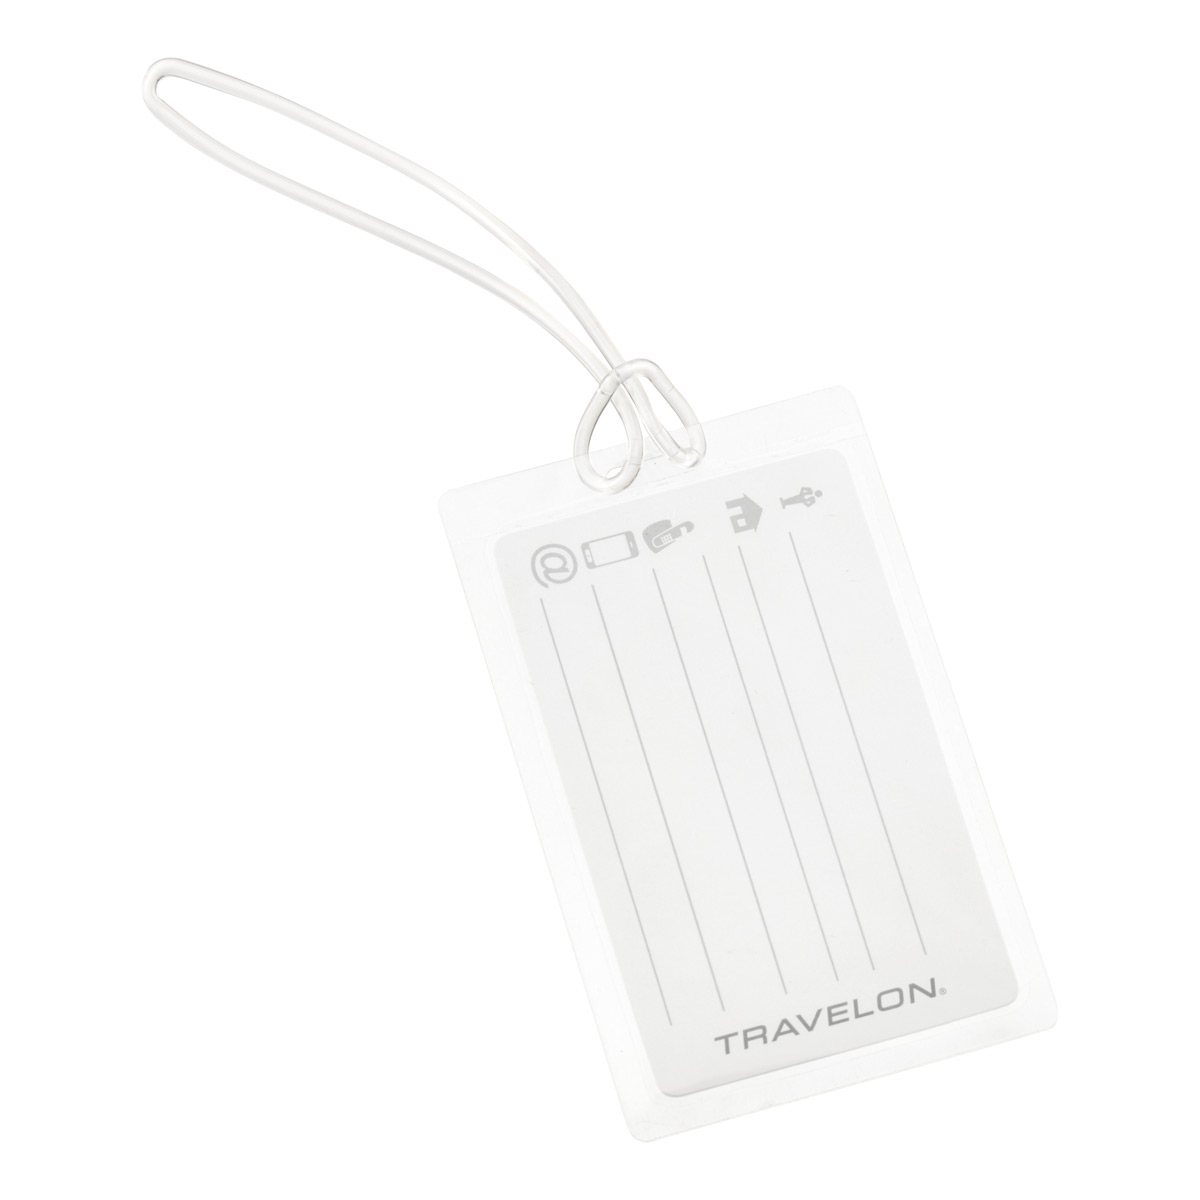 Travelon Self-Laminating Luggage Tags